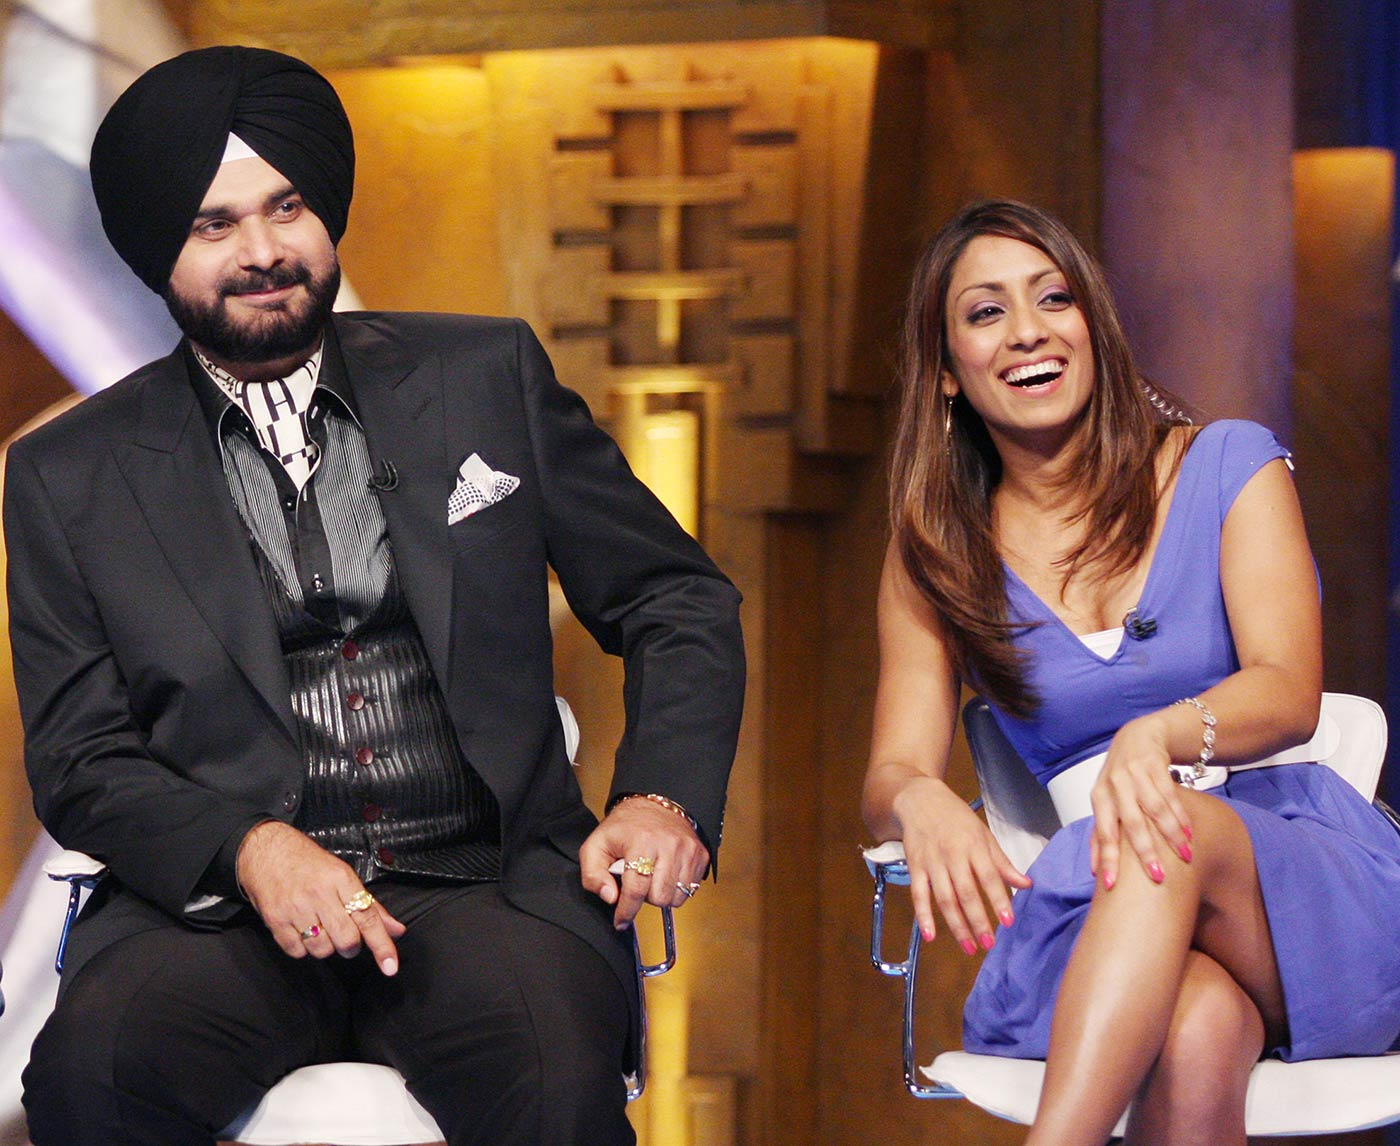 Isa Guha started out as a host on IPL coverage before taking the step up into the commentary box